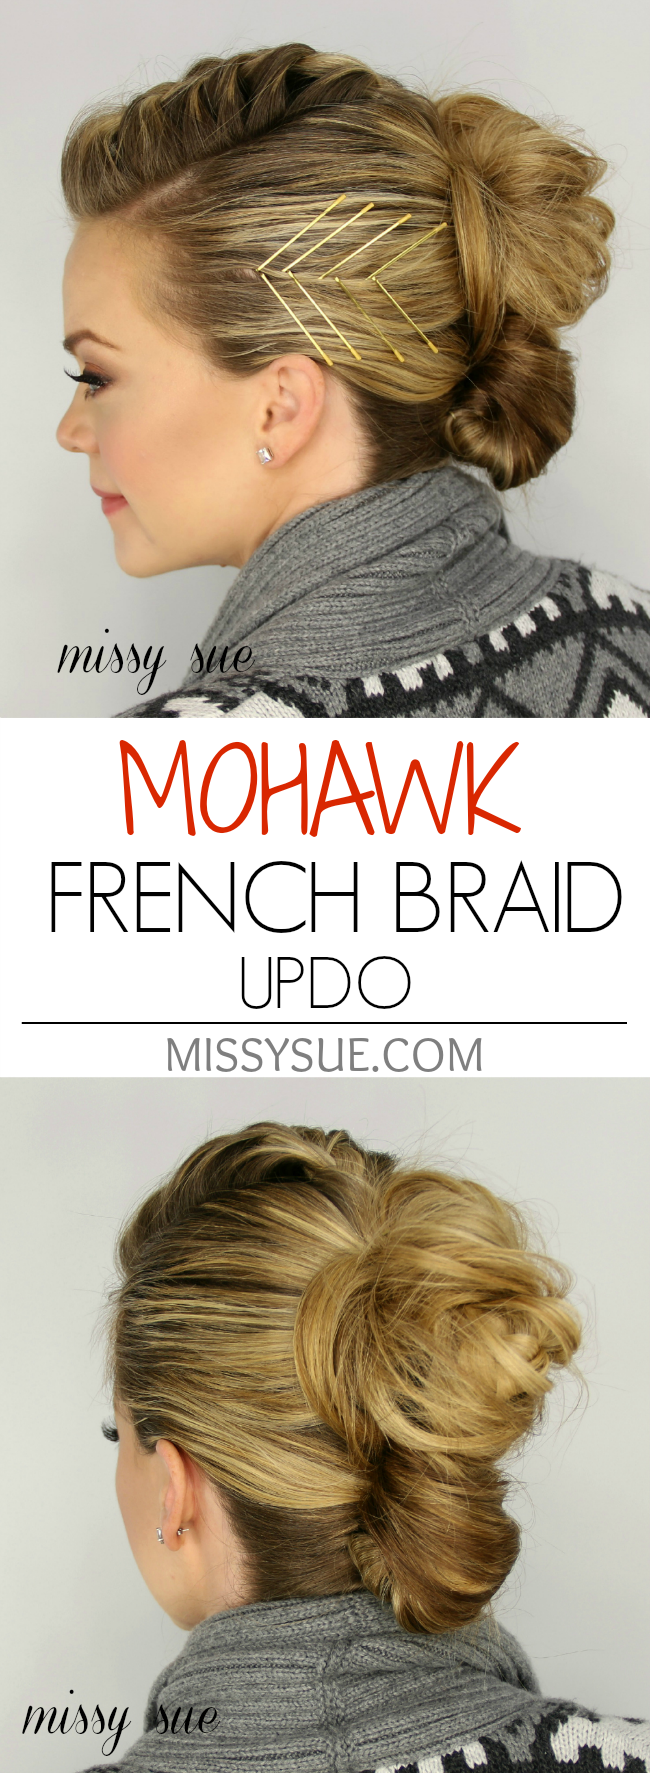 Mohawk french braid updo pinterest